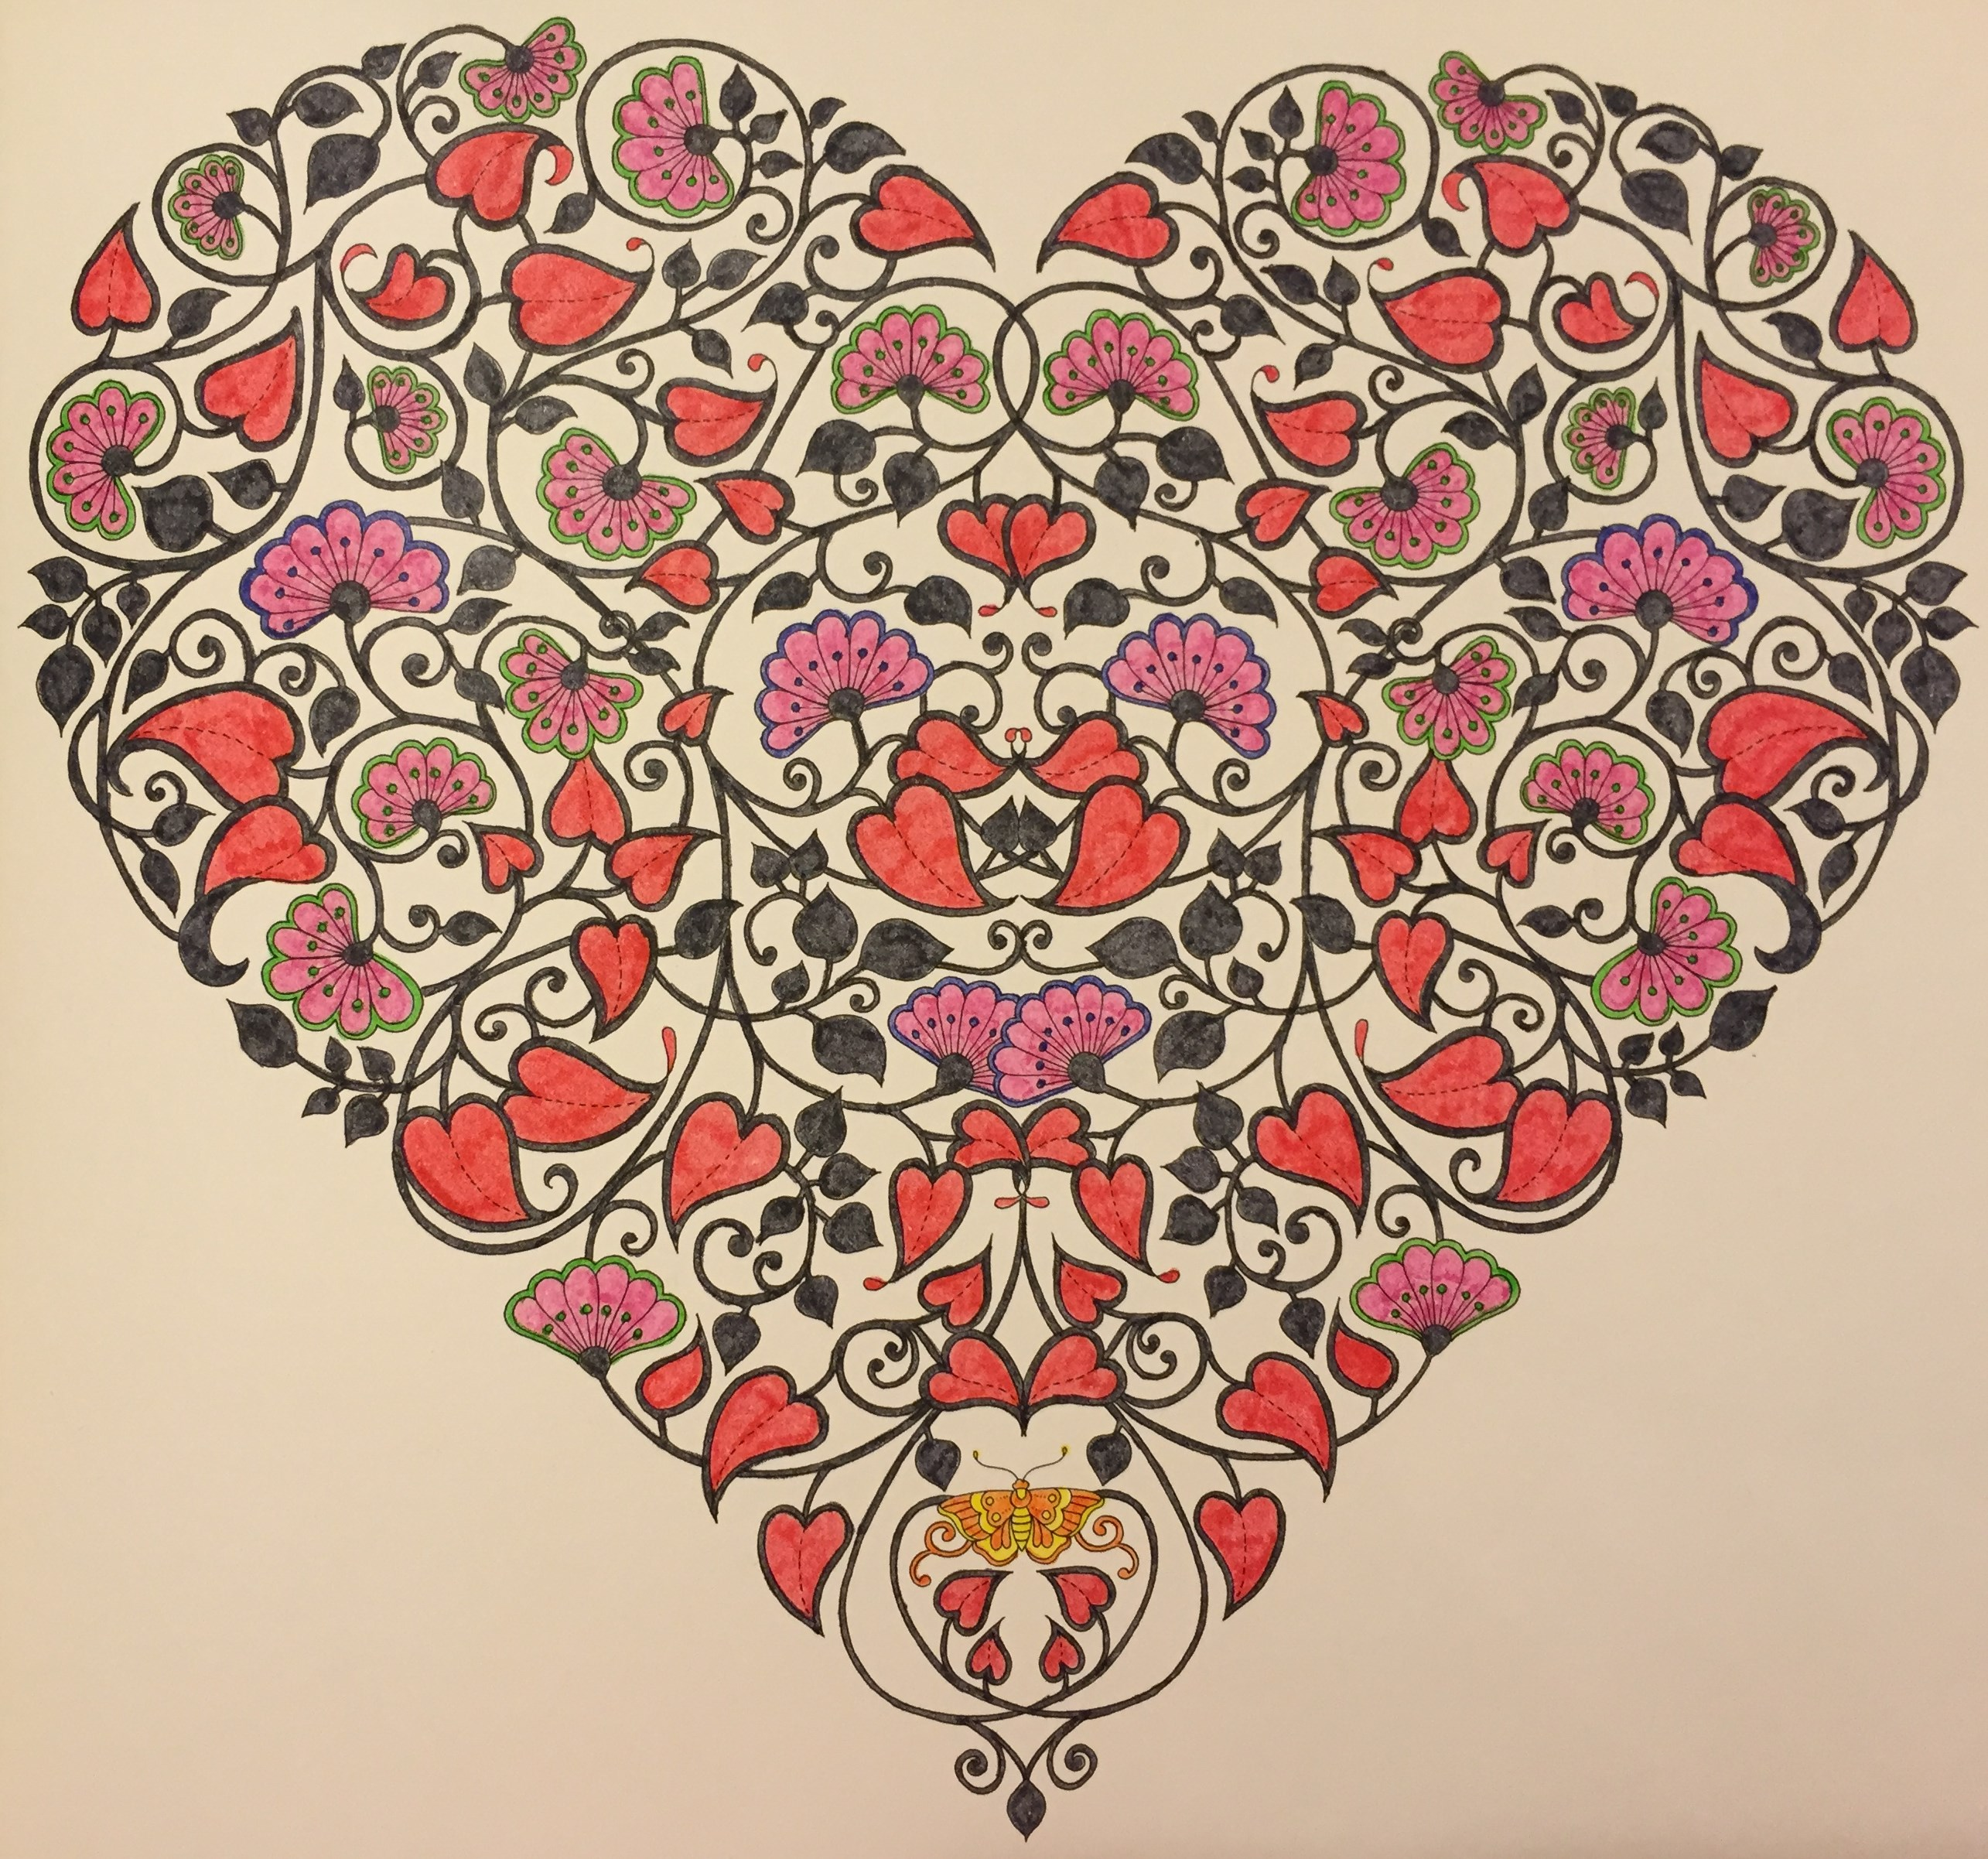 My Finished Heart Coloured With Penline Watercolour Markers From Johanna Basfords Secret Garden